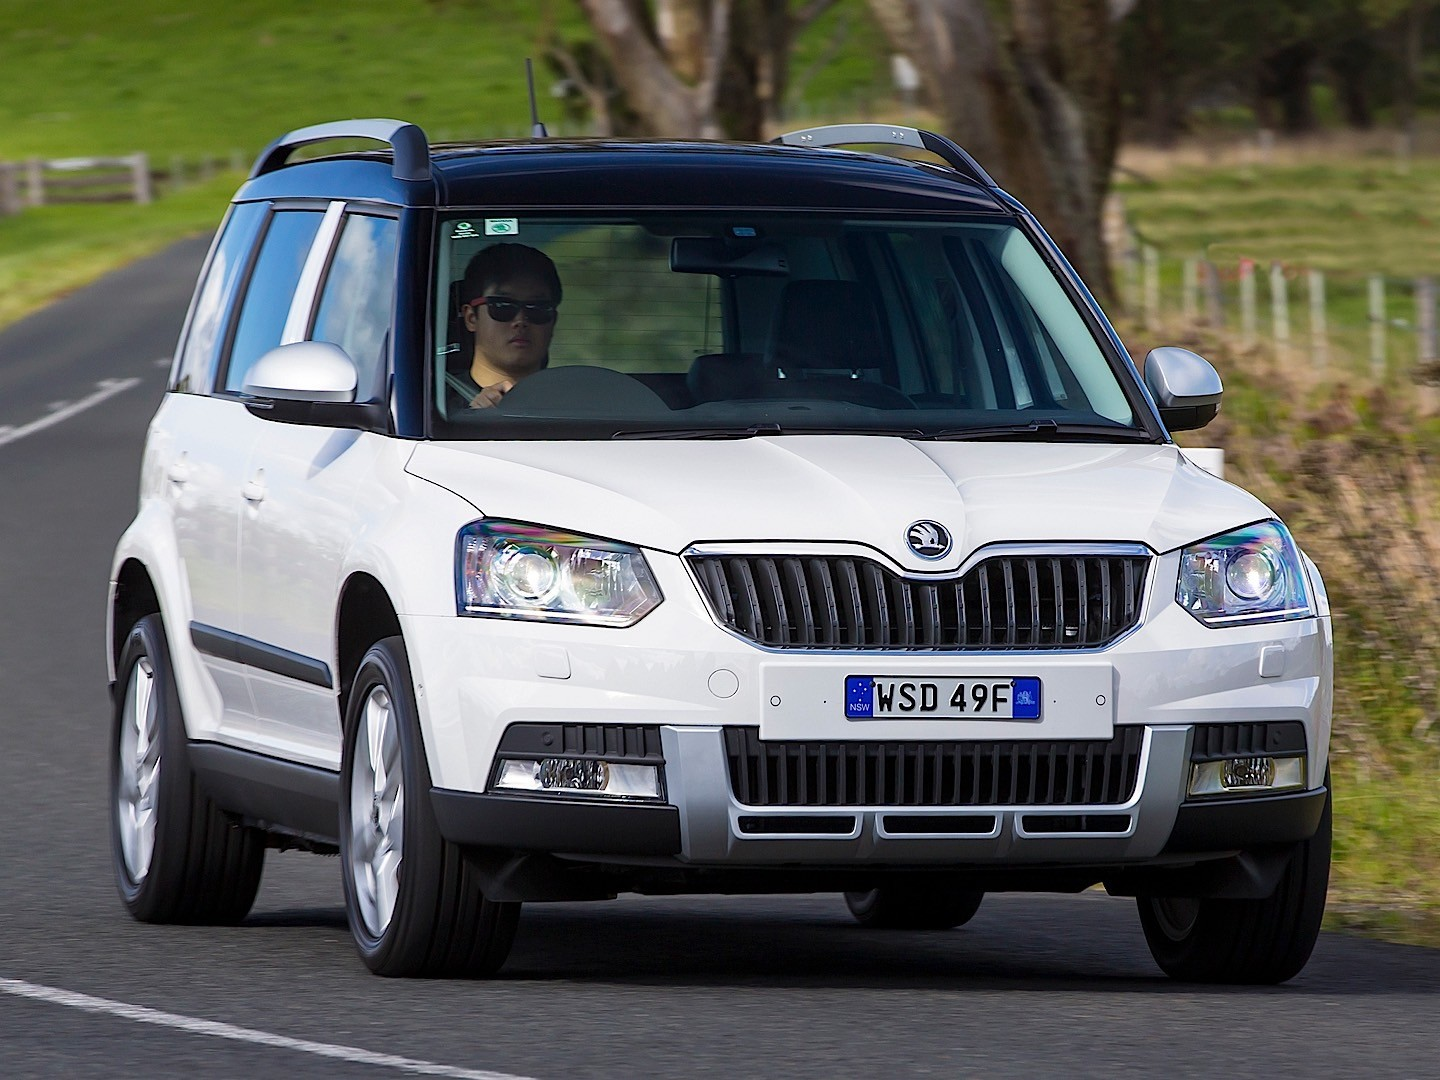 skoda yeti specs amp photos 2013 2014 2015 2016 2017